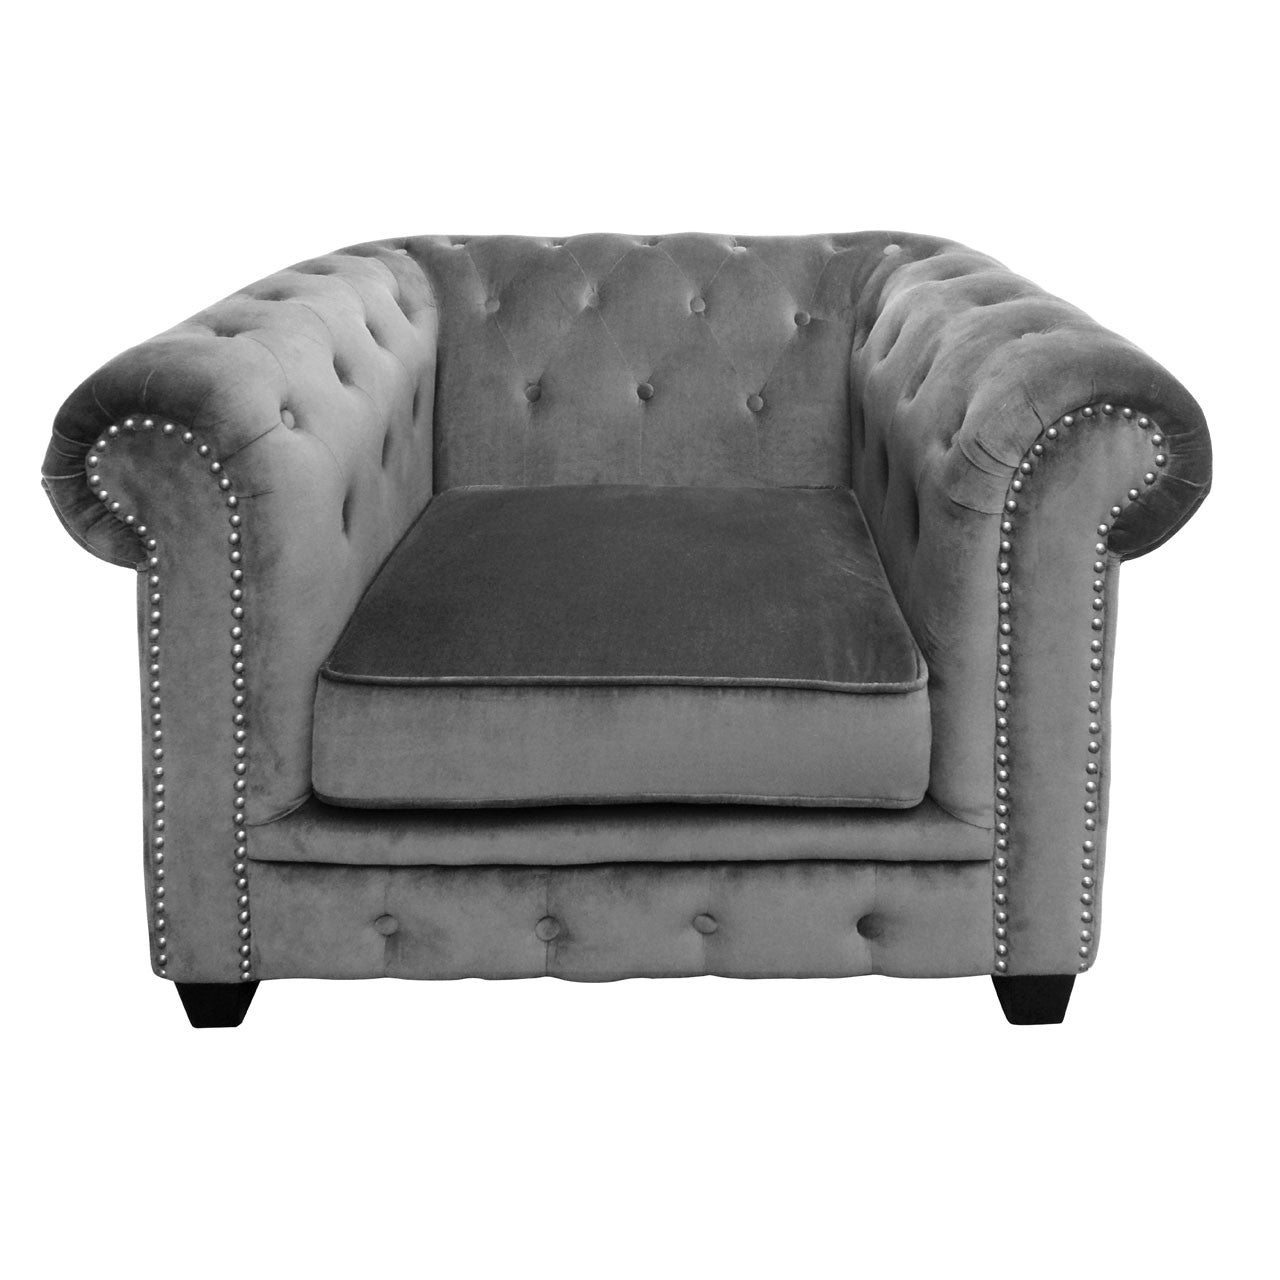 Regents Park Chesterfield Chair in Grey